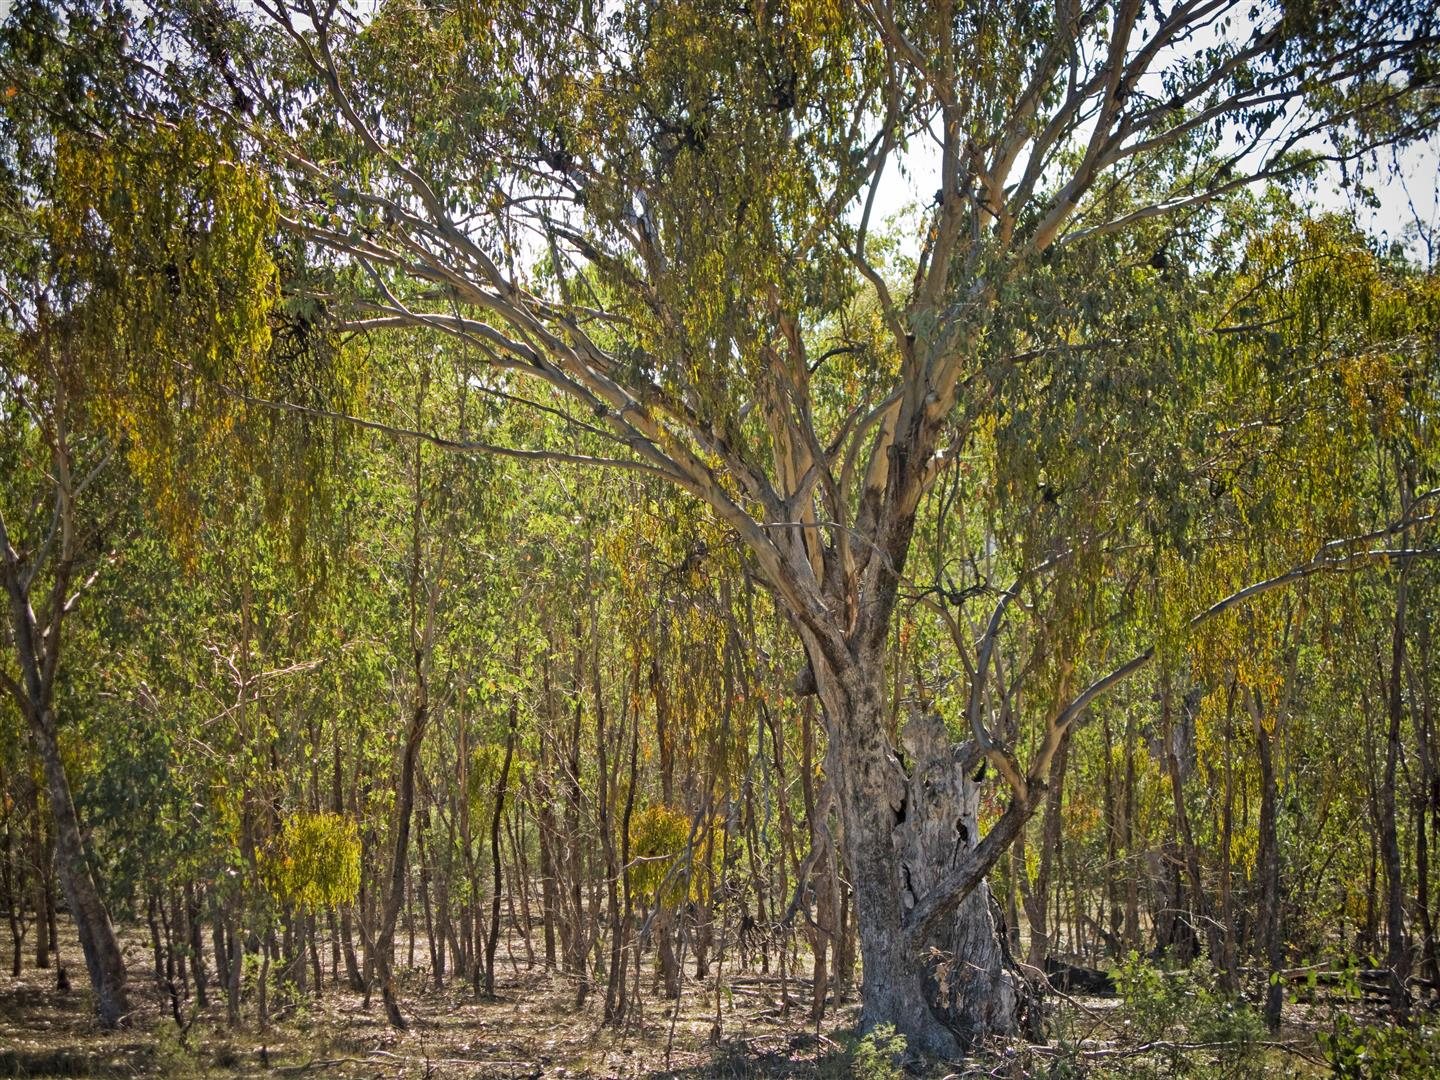 Misteltoe plants growing on a eucalypt, Sundown National Park. Photo R. Ashdown.